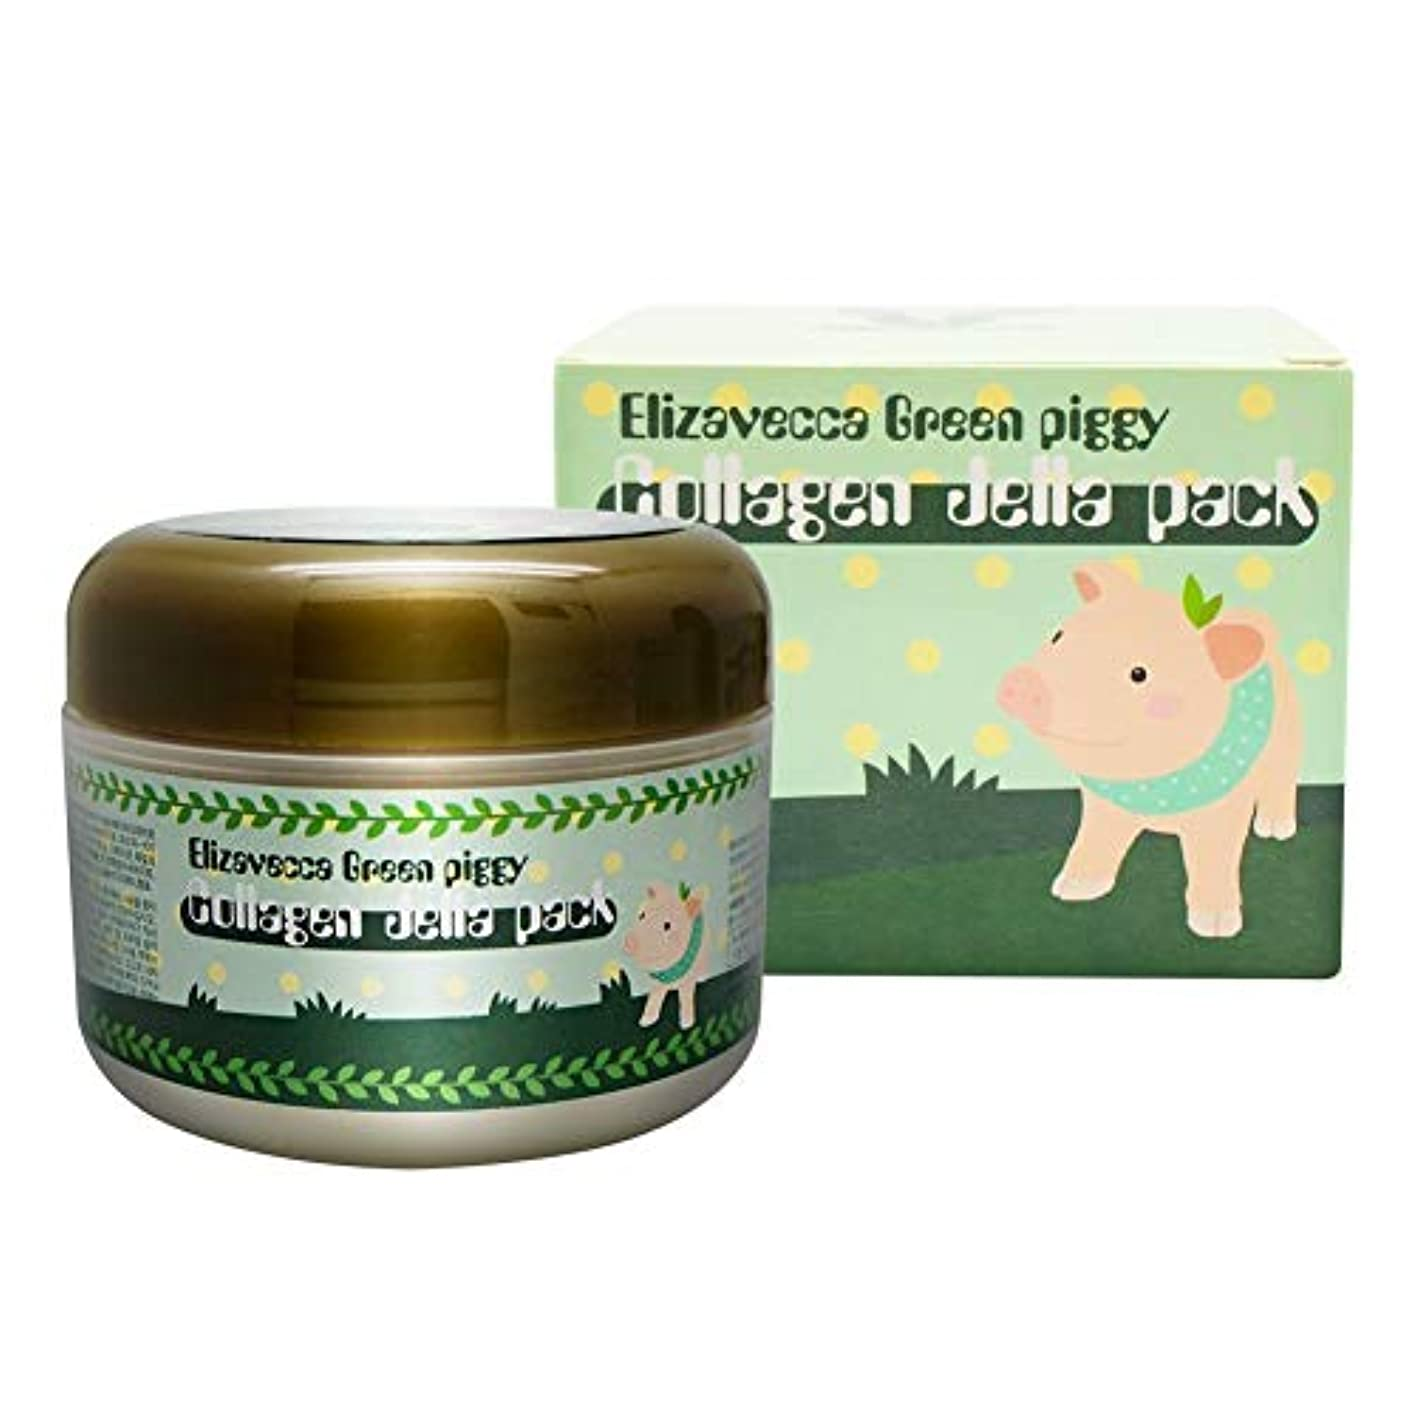 故障材料分類するElizavecca Green Piggy Collagen Jella Pack pig mask 100g